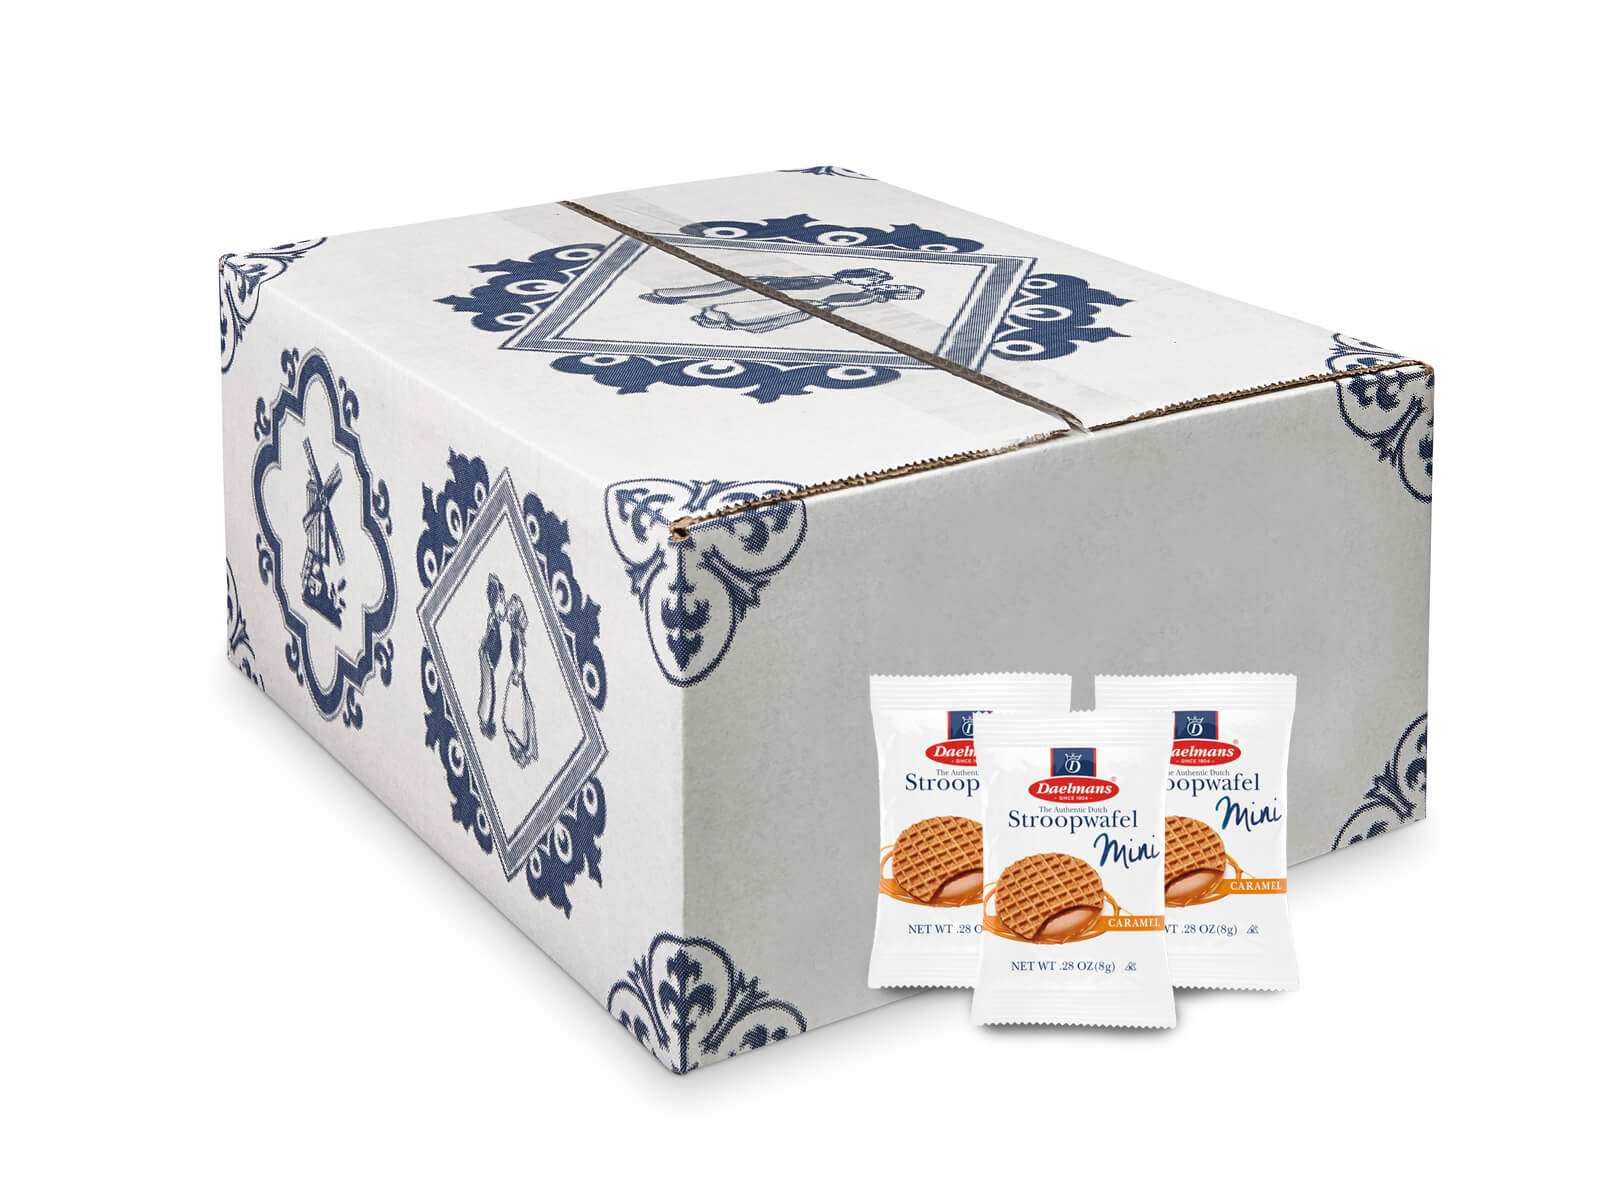 Mini caramel Stroopwafels from Daelmans single wrapped